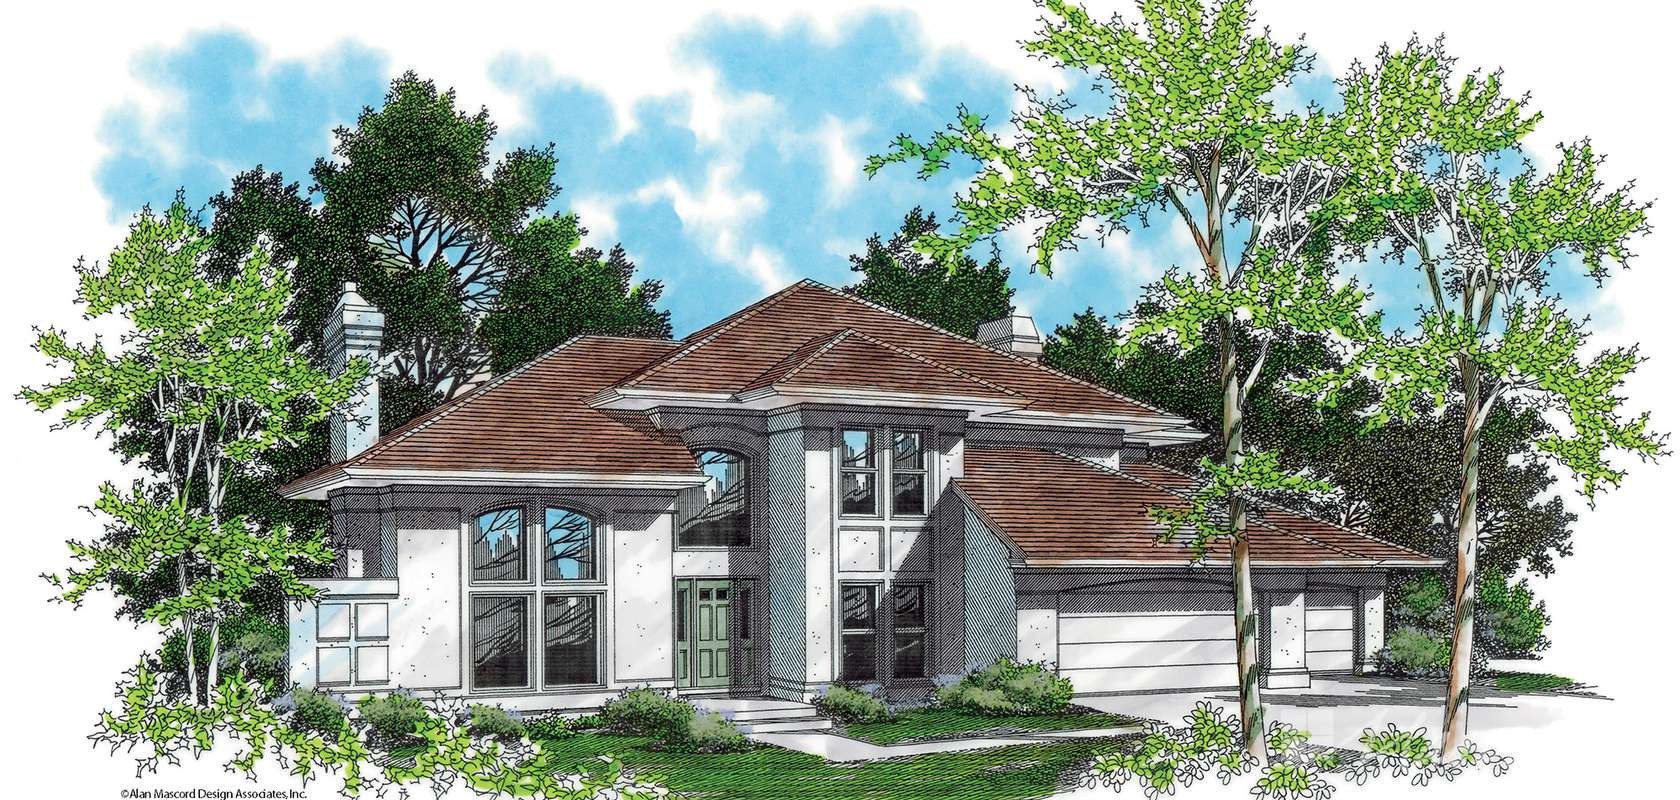 Mascord House Plan B2206-Truss Roof: The Silverston